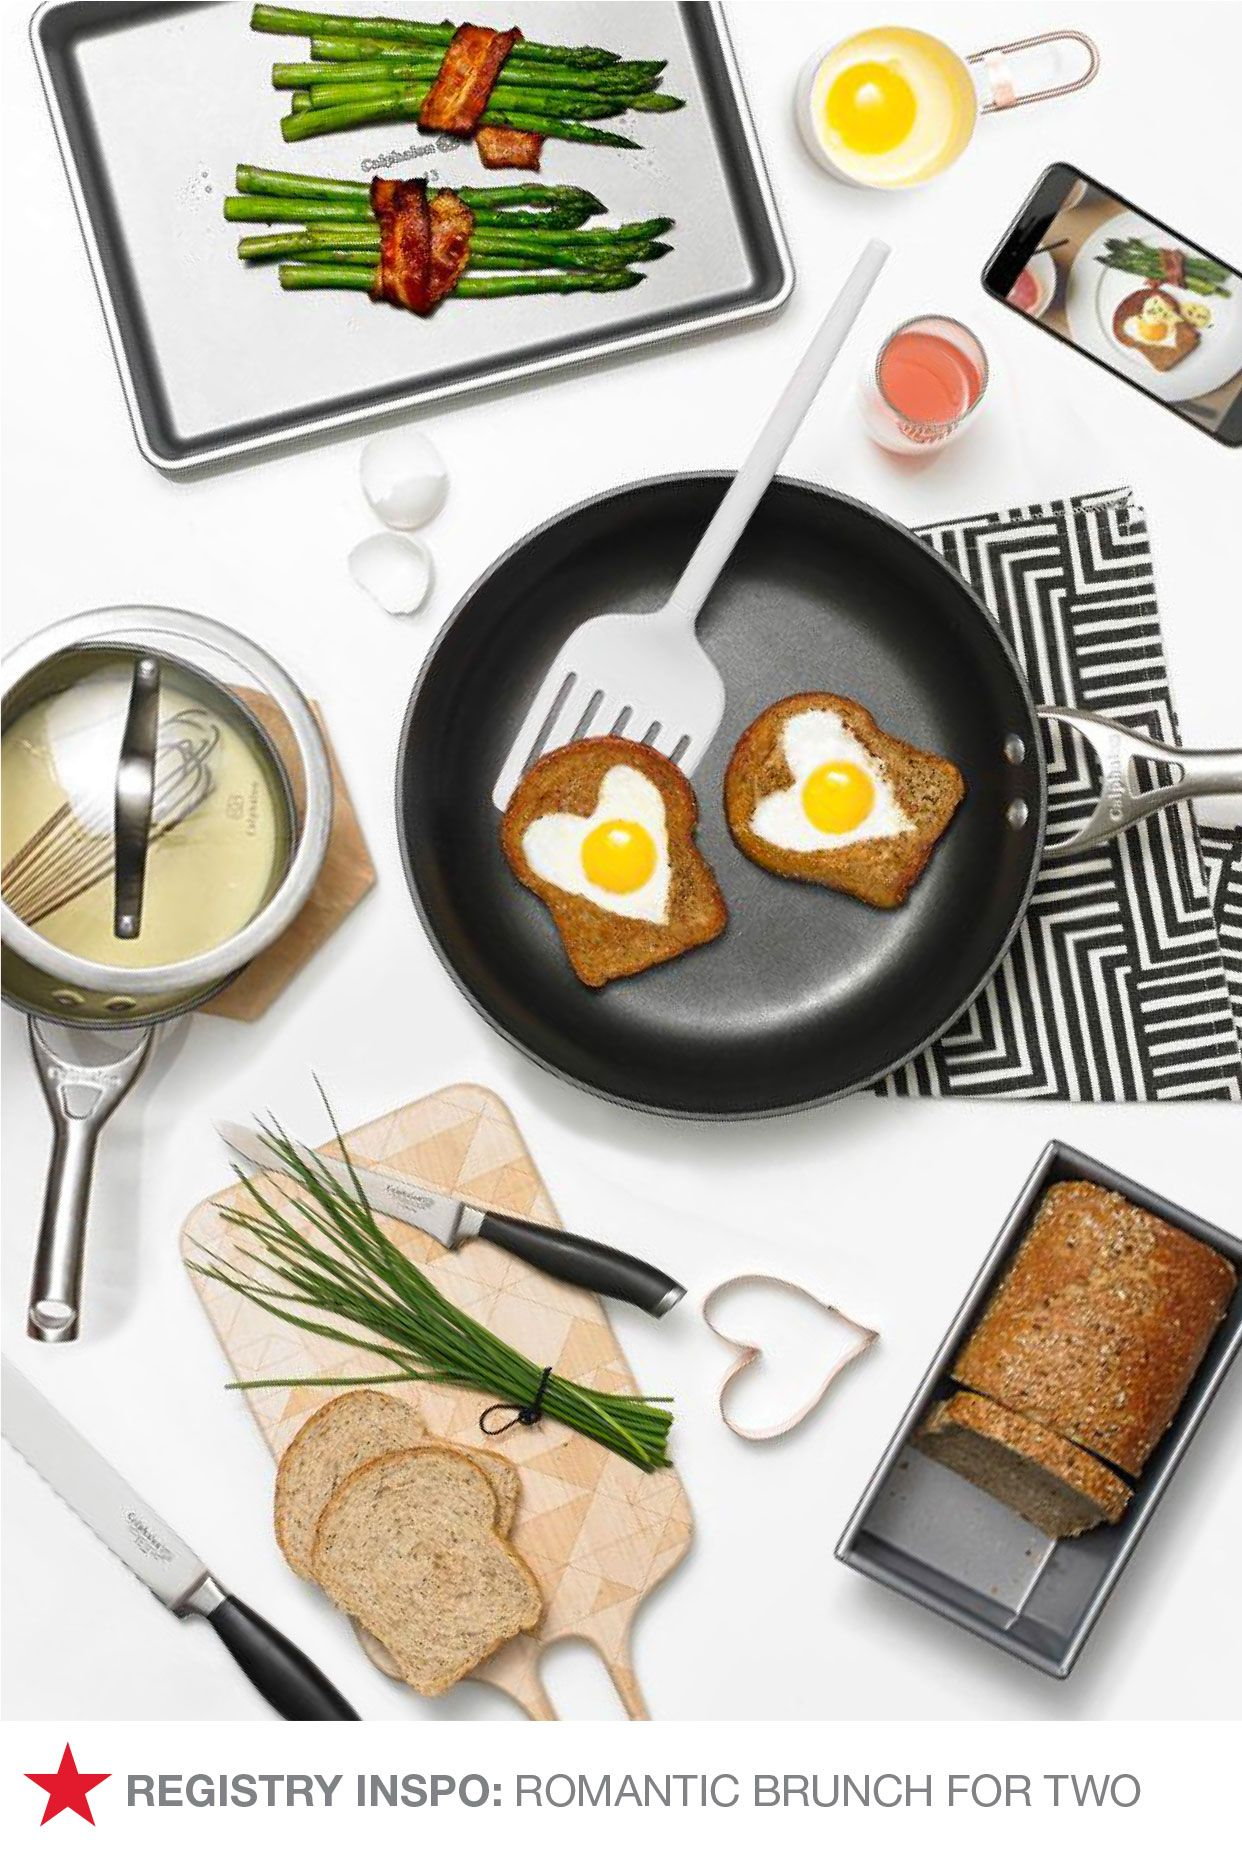 Have a Macy's Registry? (If not, you should definitely make one!) Arm yourself with the right kitchen basics and tools to turn an ordinary Sunday into a romantic brunch for two. You'll need Calphalon cookware and bakeware, plus some kitchen gadgets like spatulas, cookie cutters, cutting boards and more! Don't miss out — add these to your Macy's Registry on macys.com now!